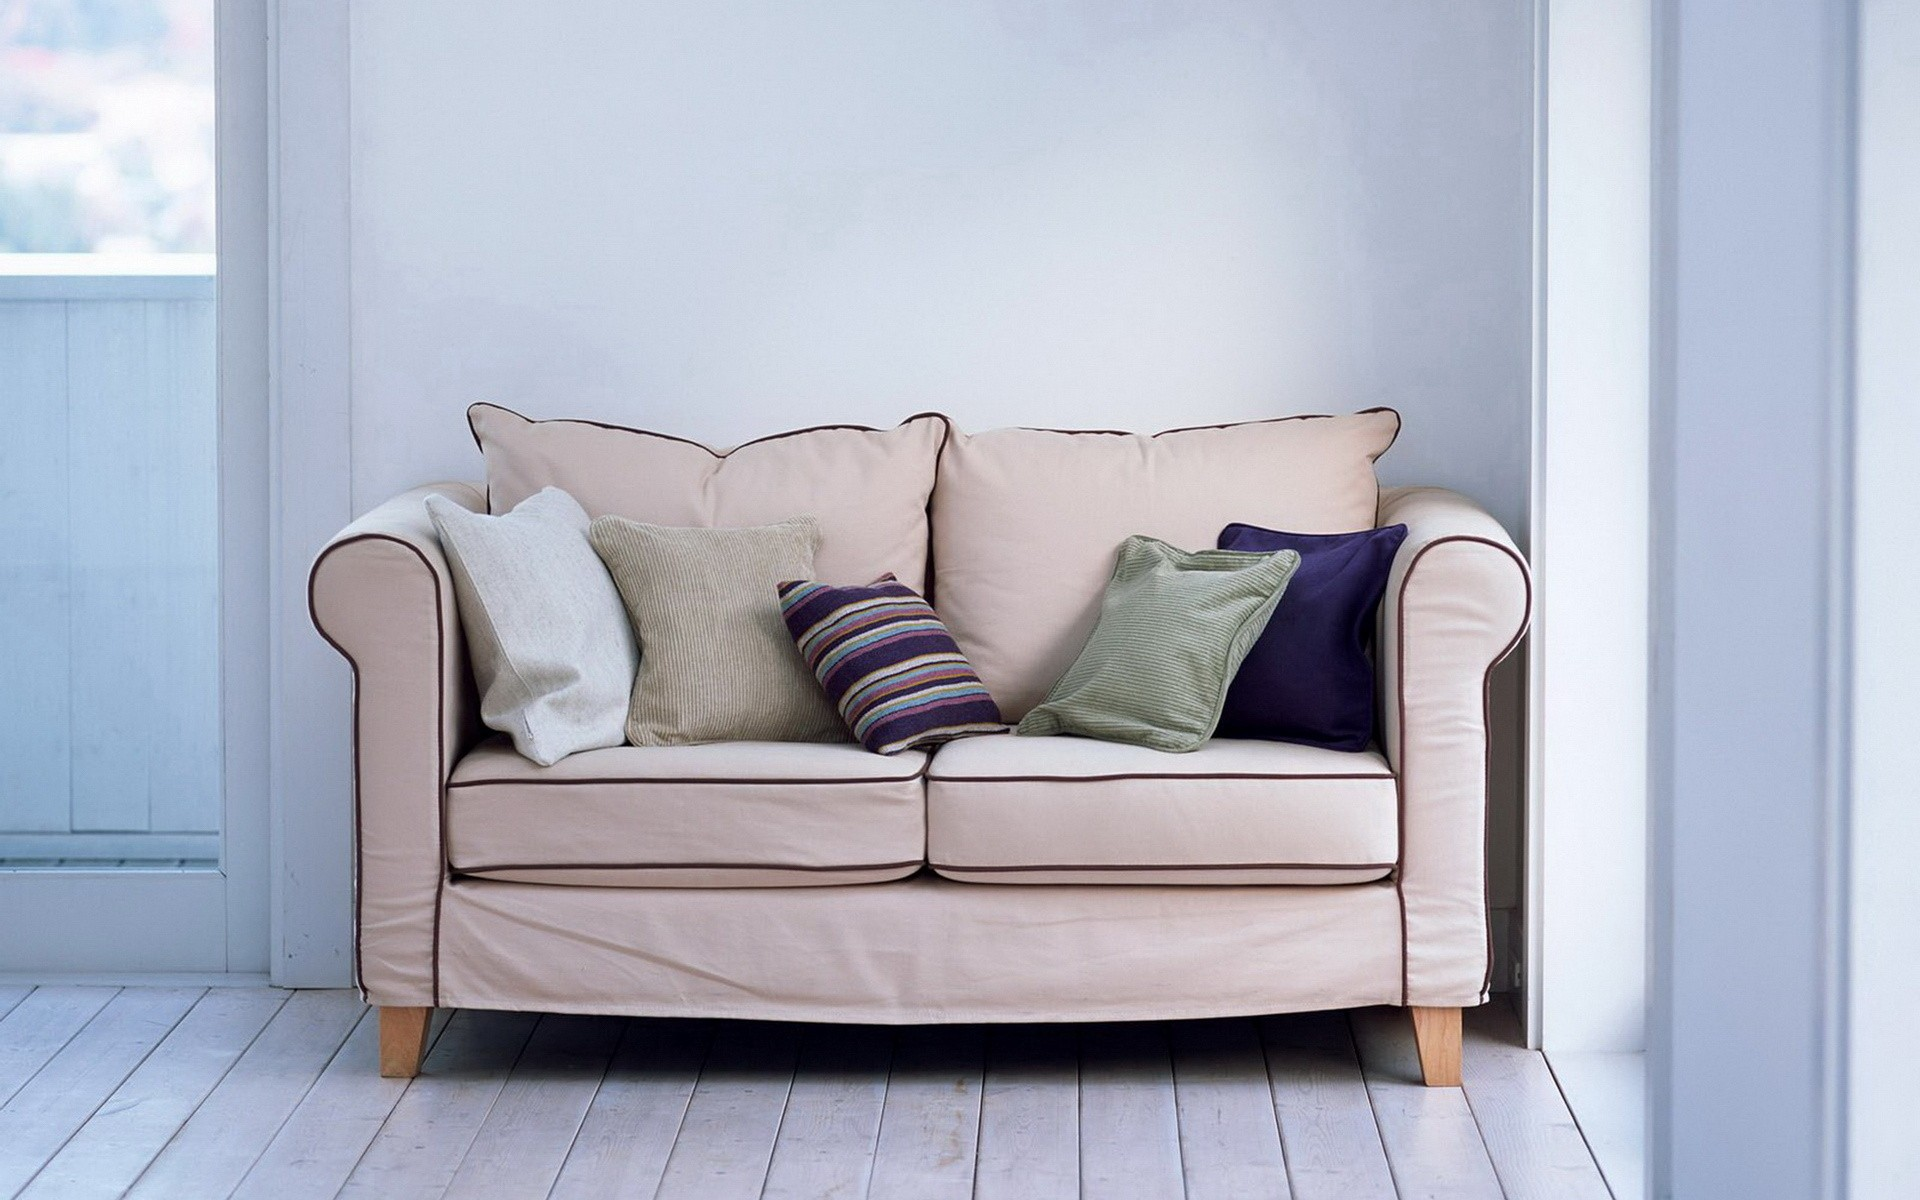 Lovely Couch Wallpaper